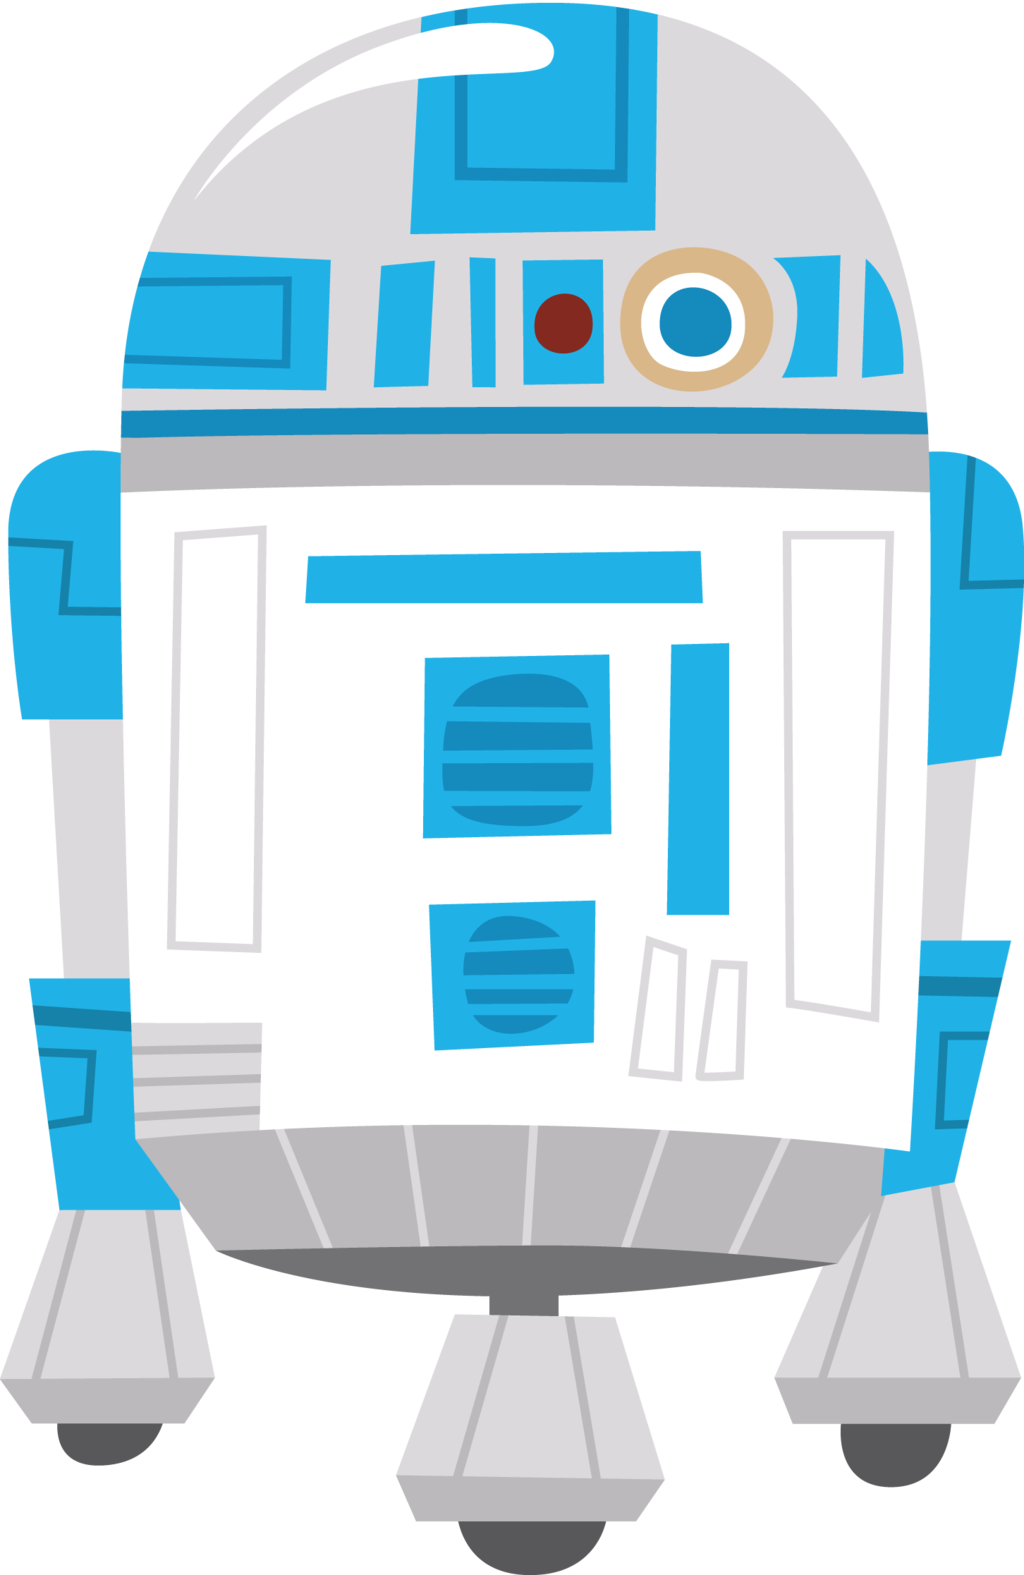 Clipart baby star wars image royalty free stock r2d2 by Chrispix326 on DeviantArt image royalty free stock